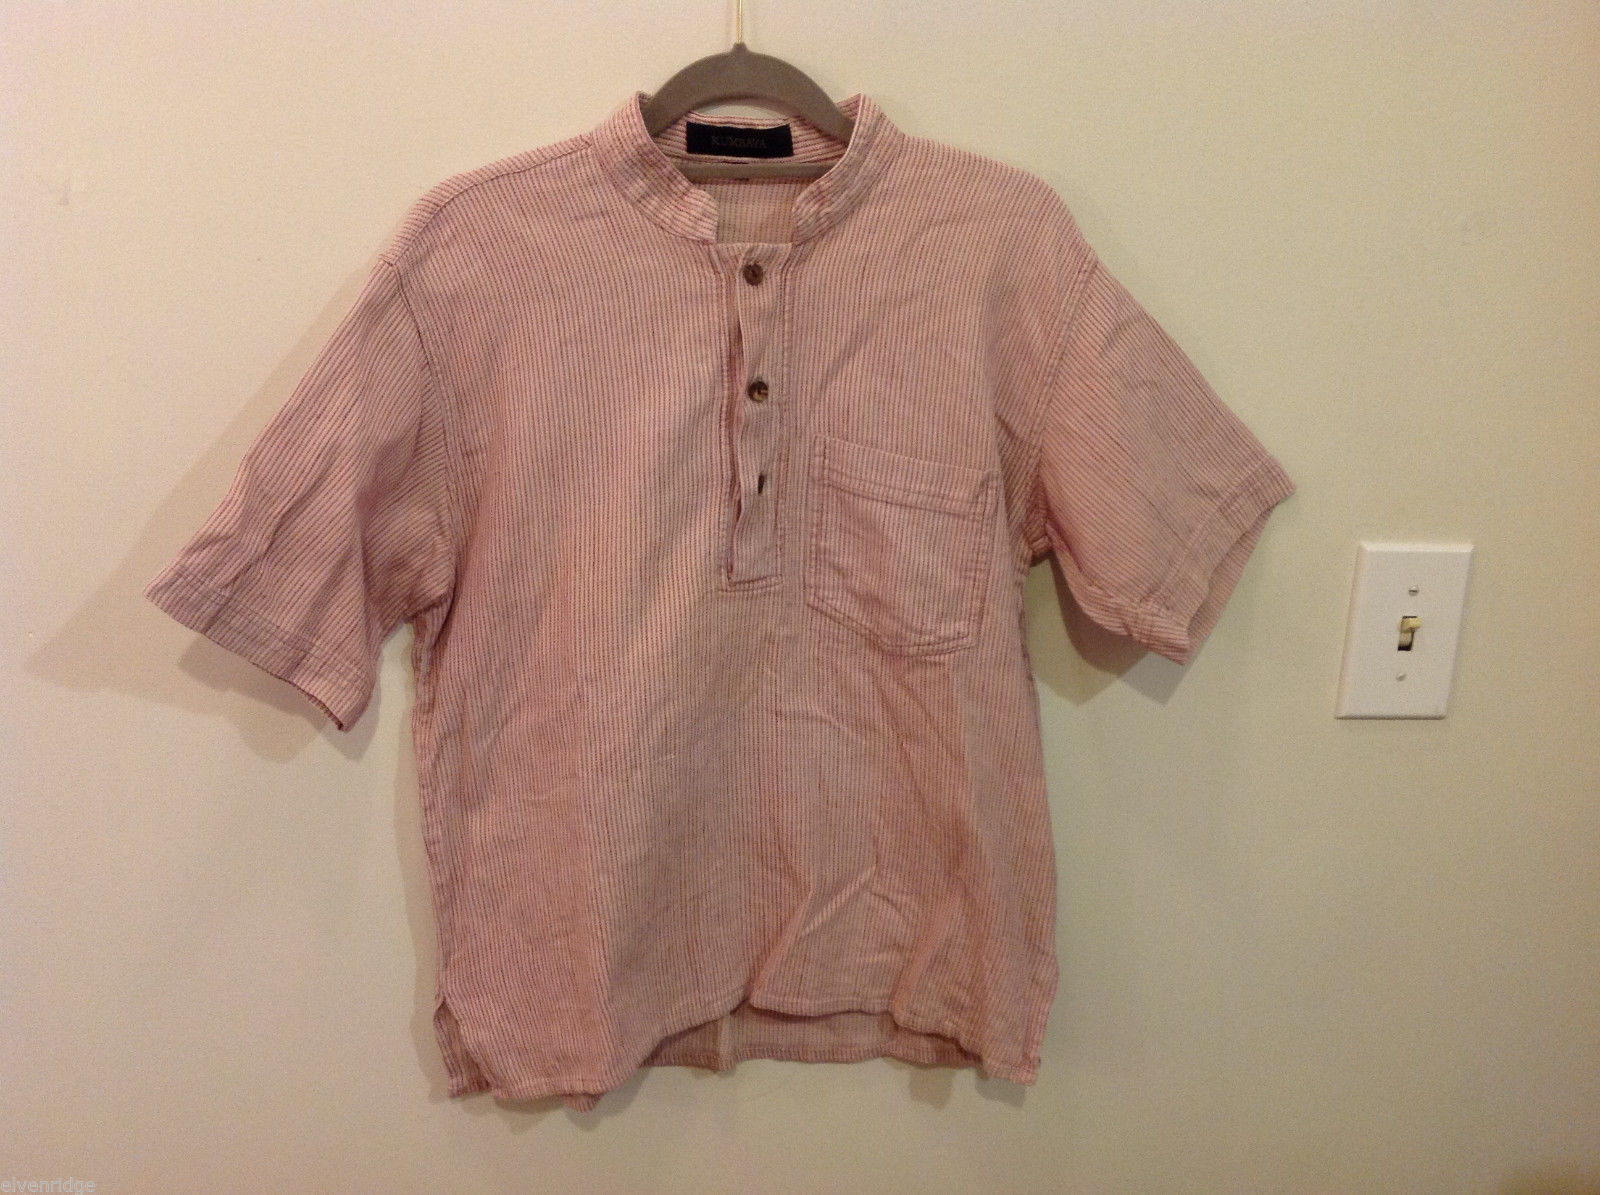 Kumbaya Mens short sleeve casual shirt multicolored stripes, size 40